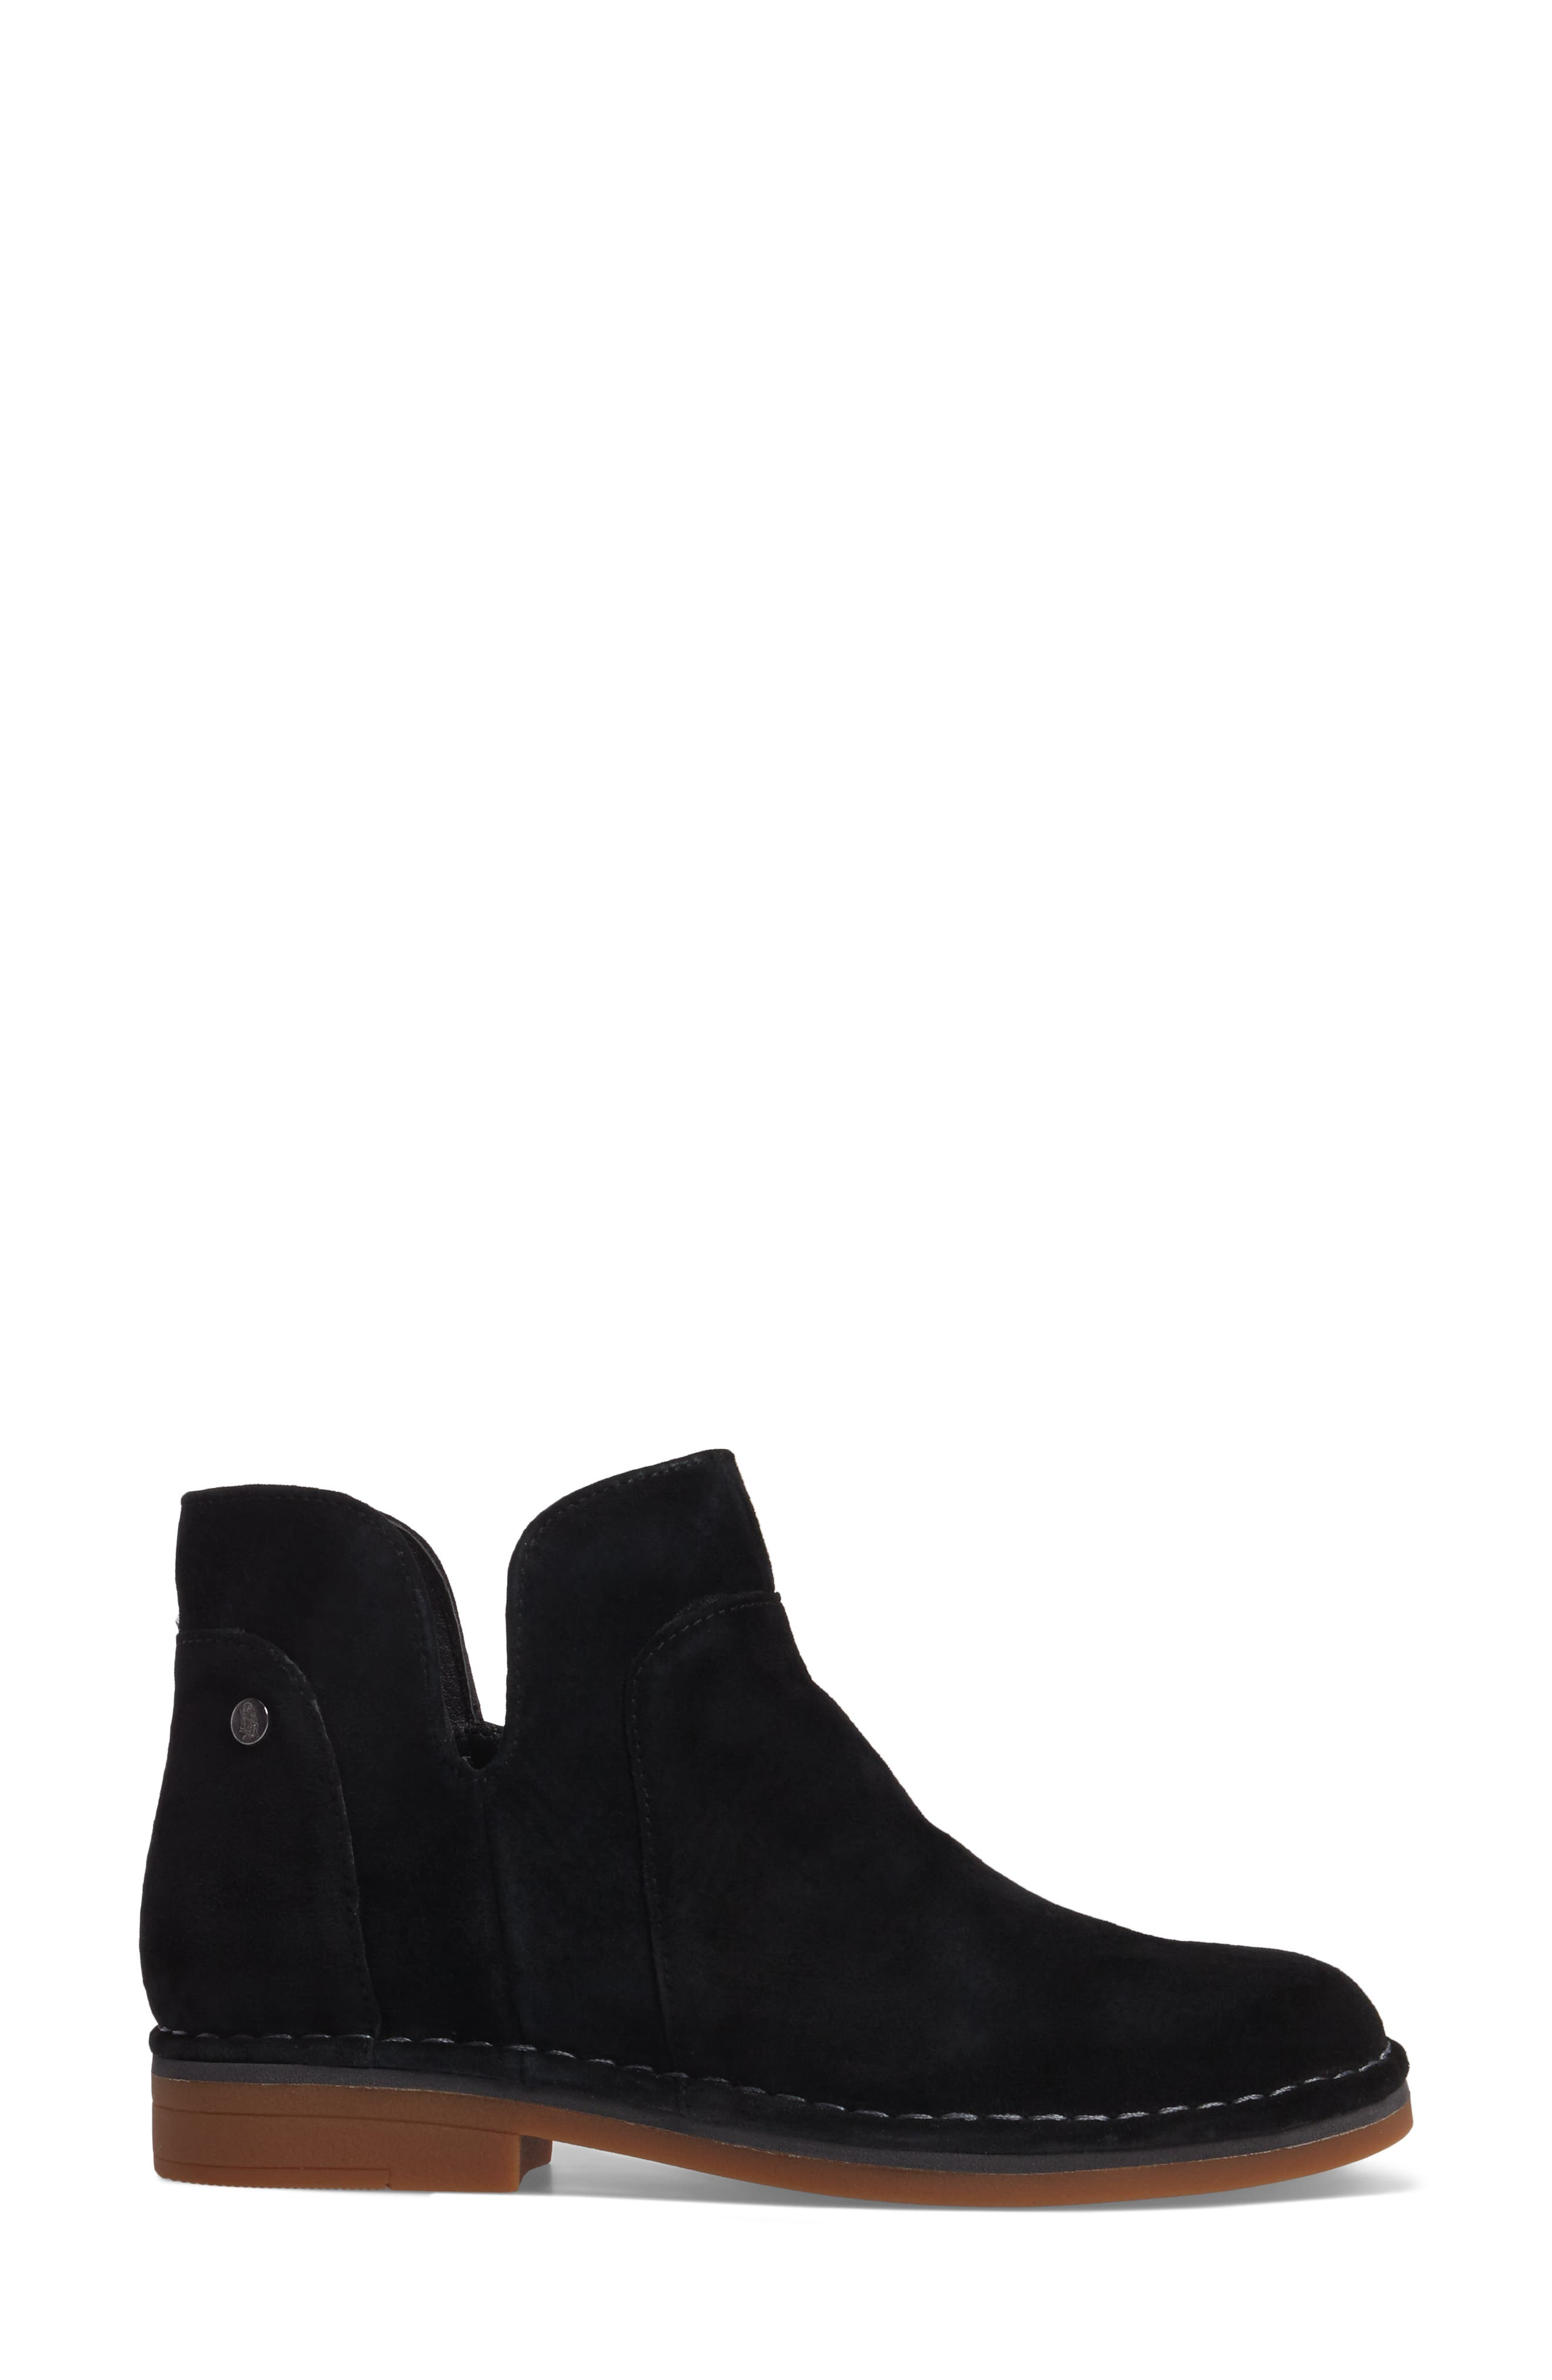 Claudia Catelyn Bootie,                             Alternate thumbnail 7, color,